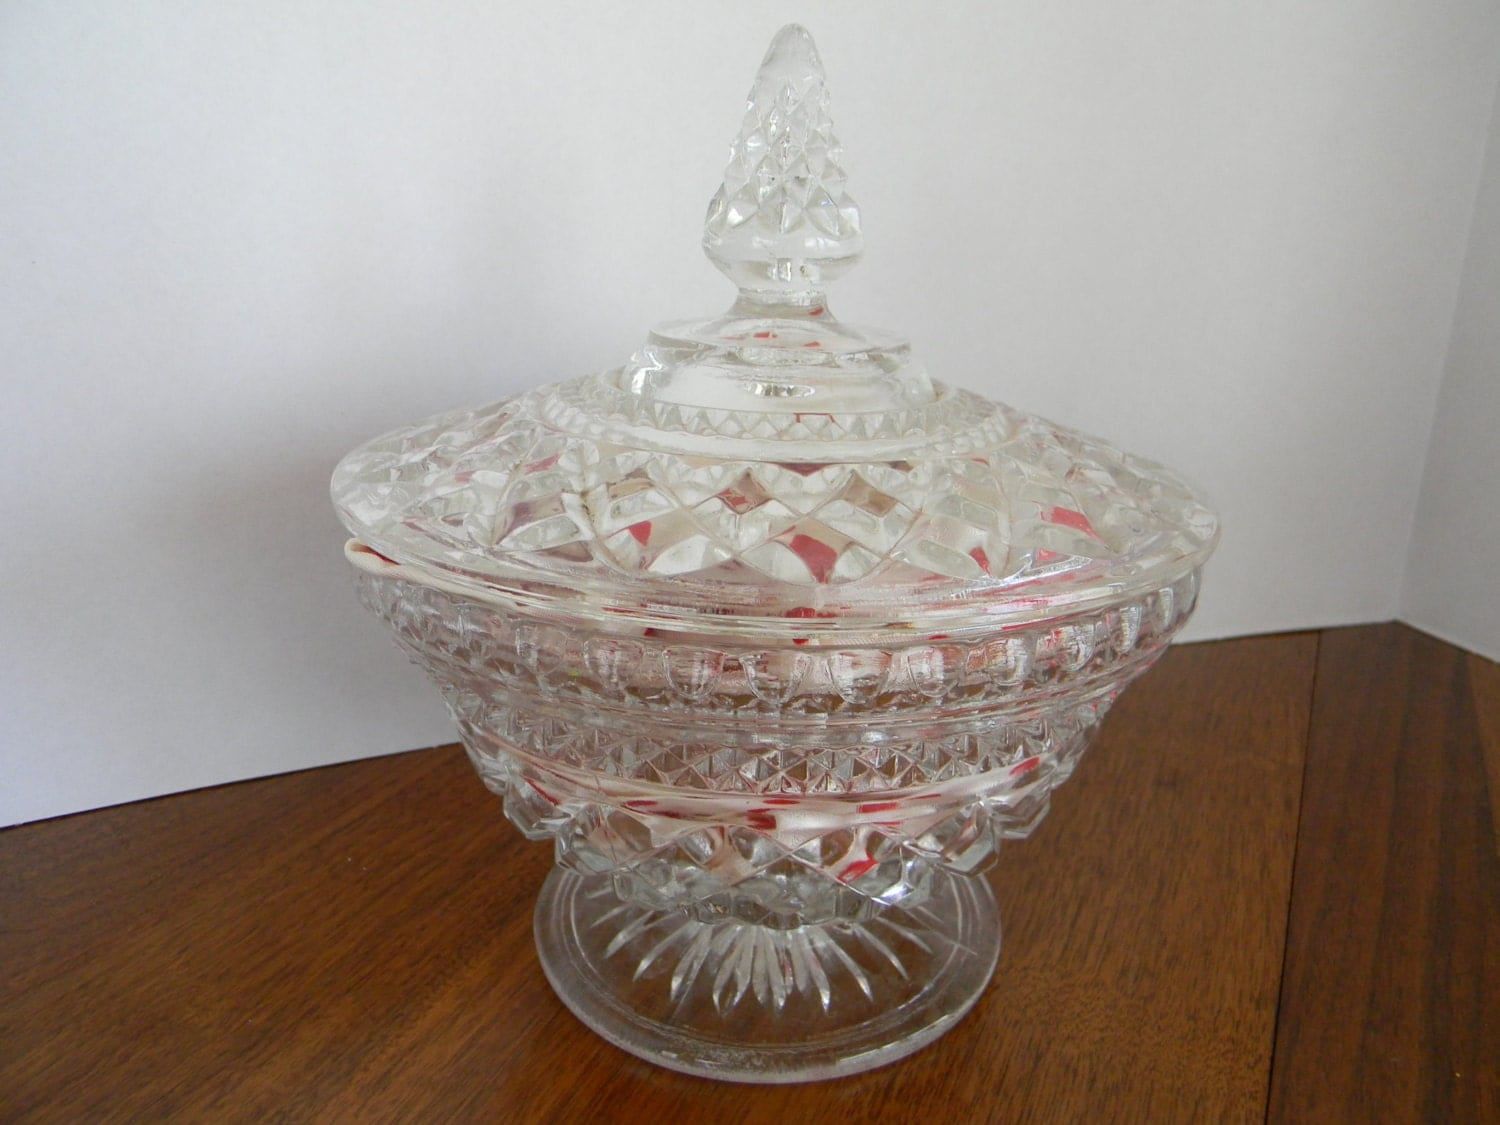 Clearance sale candy dish holiday decor by pickerchicks on for Christmas ornament sale clearance